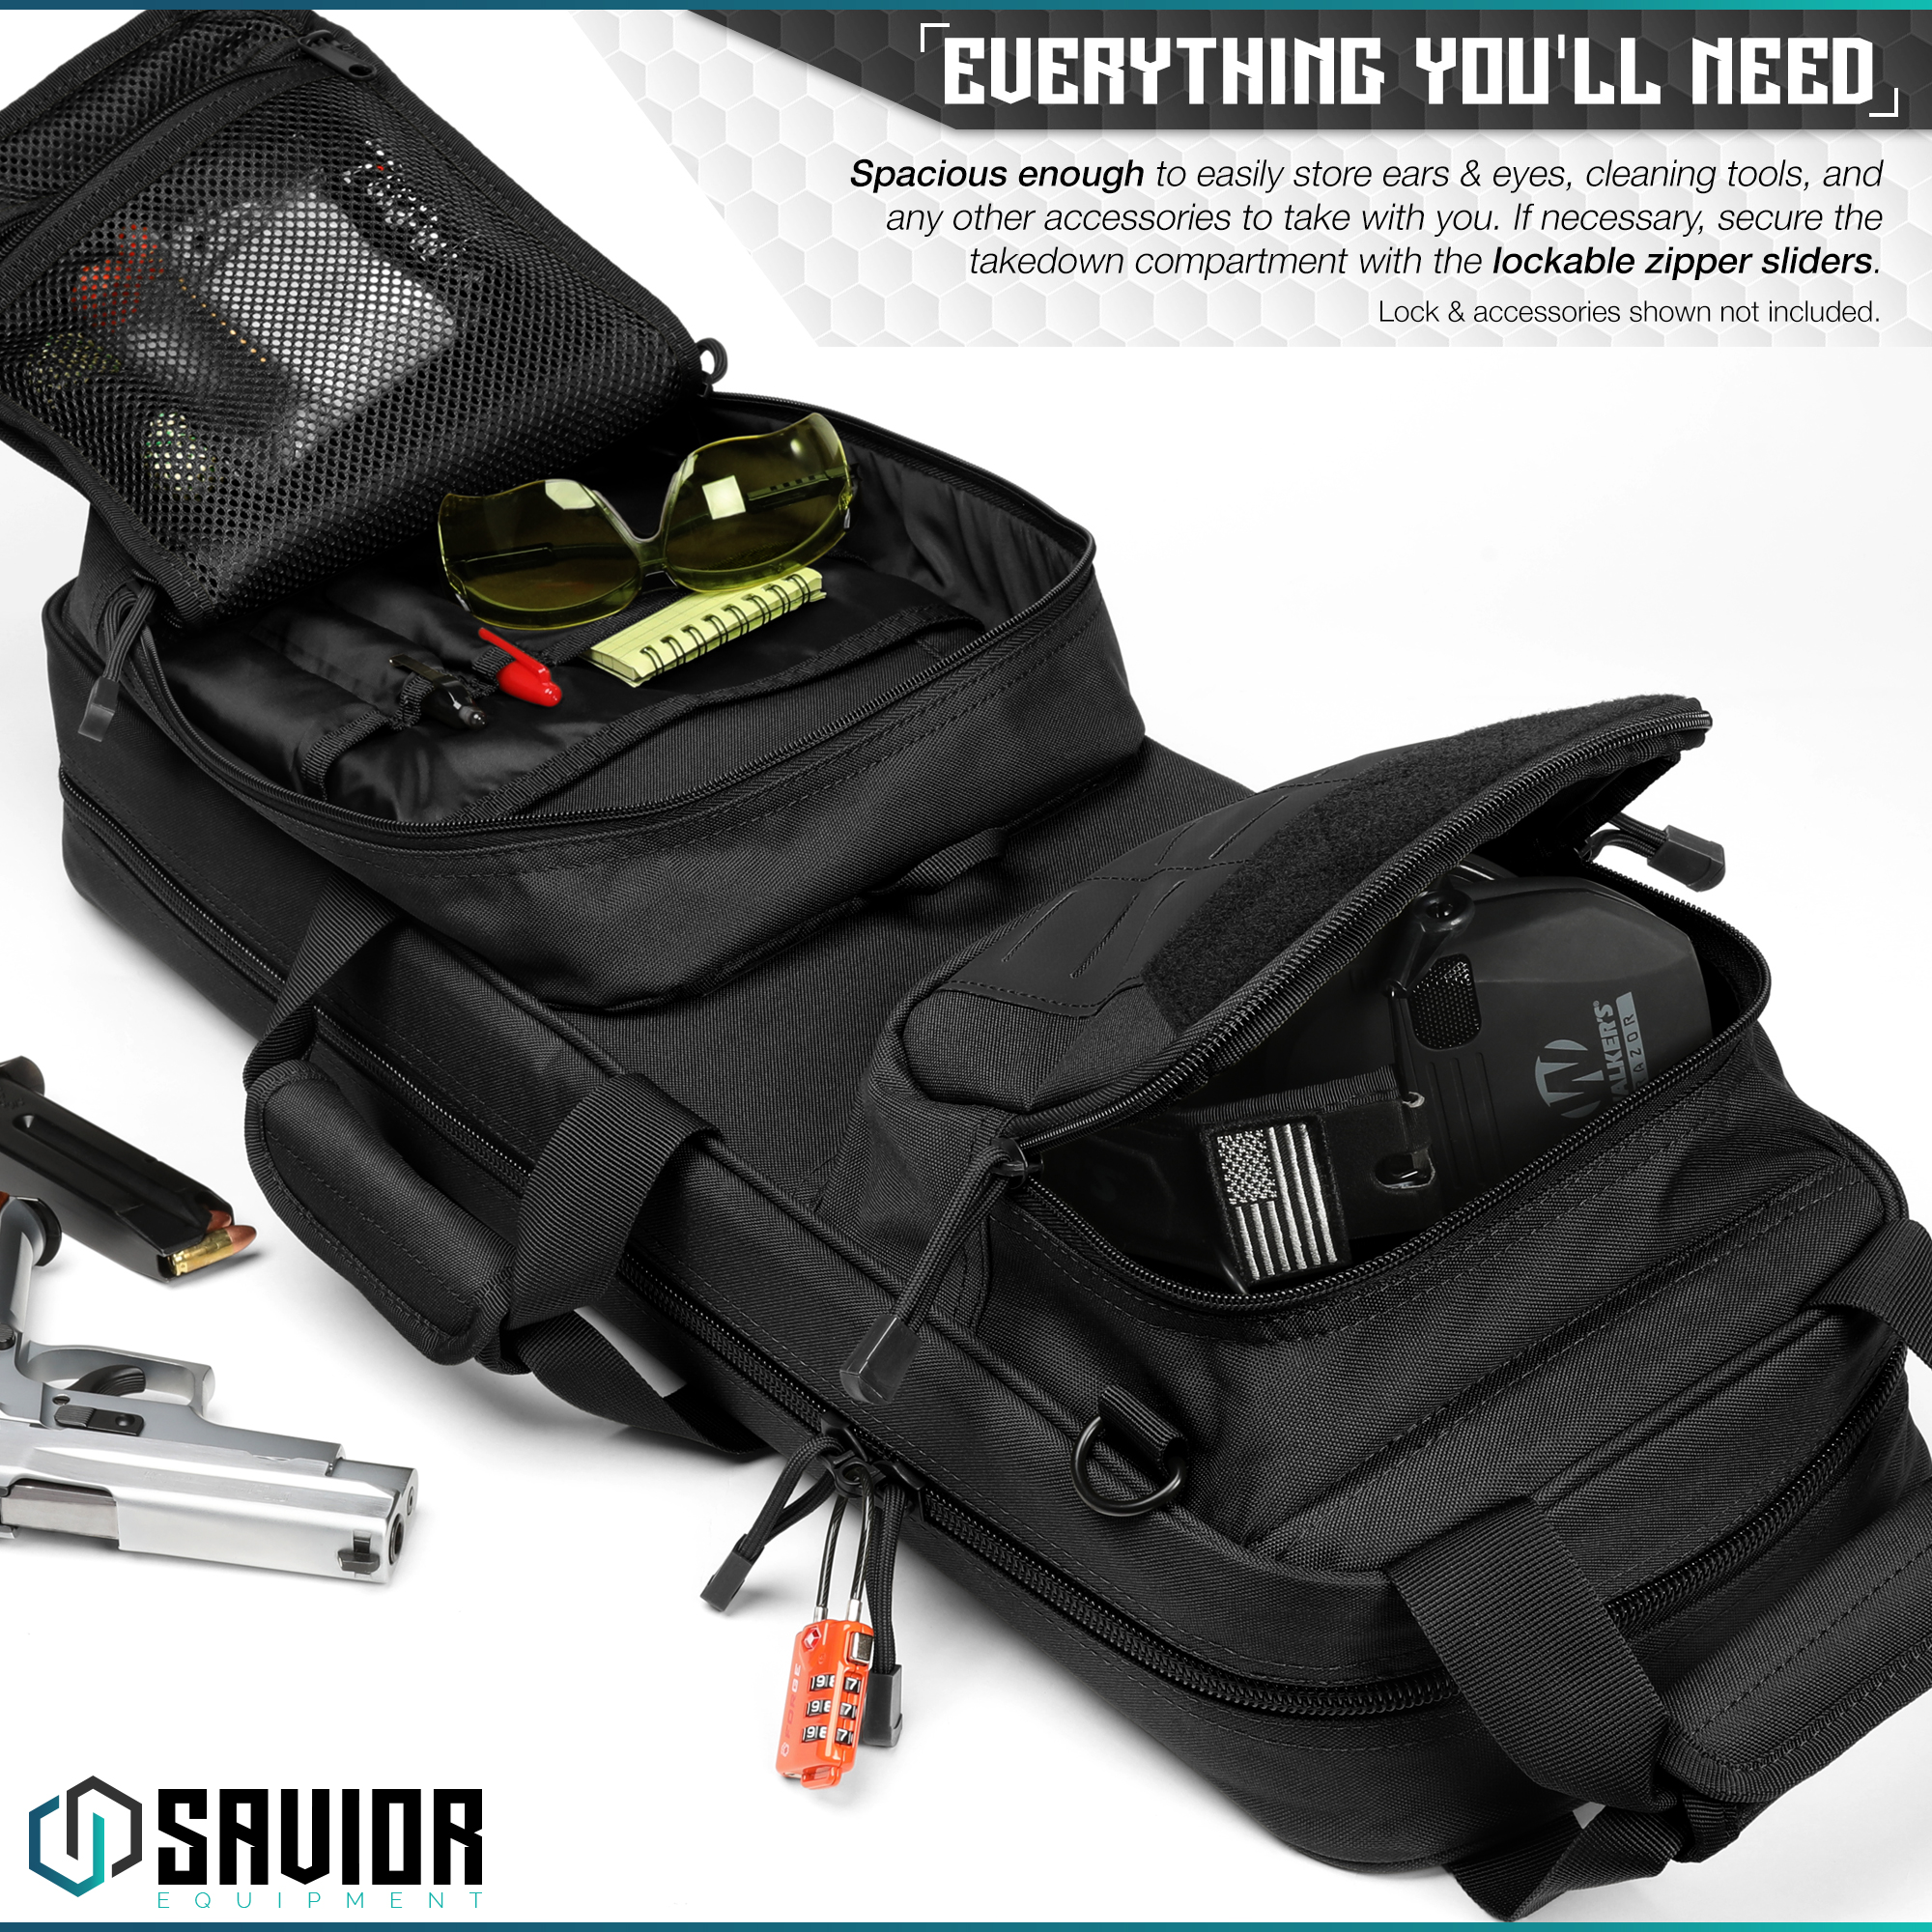 Savior-Tactical-Urban-Takedown-Bag-Carbine-Rifle-Padded-Shotgun-Firearm-Backpack thumbnail 11